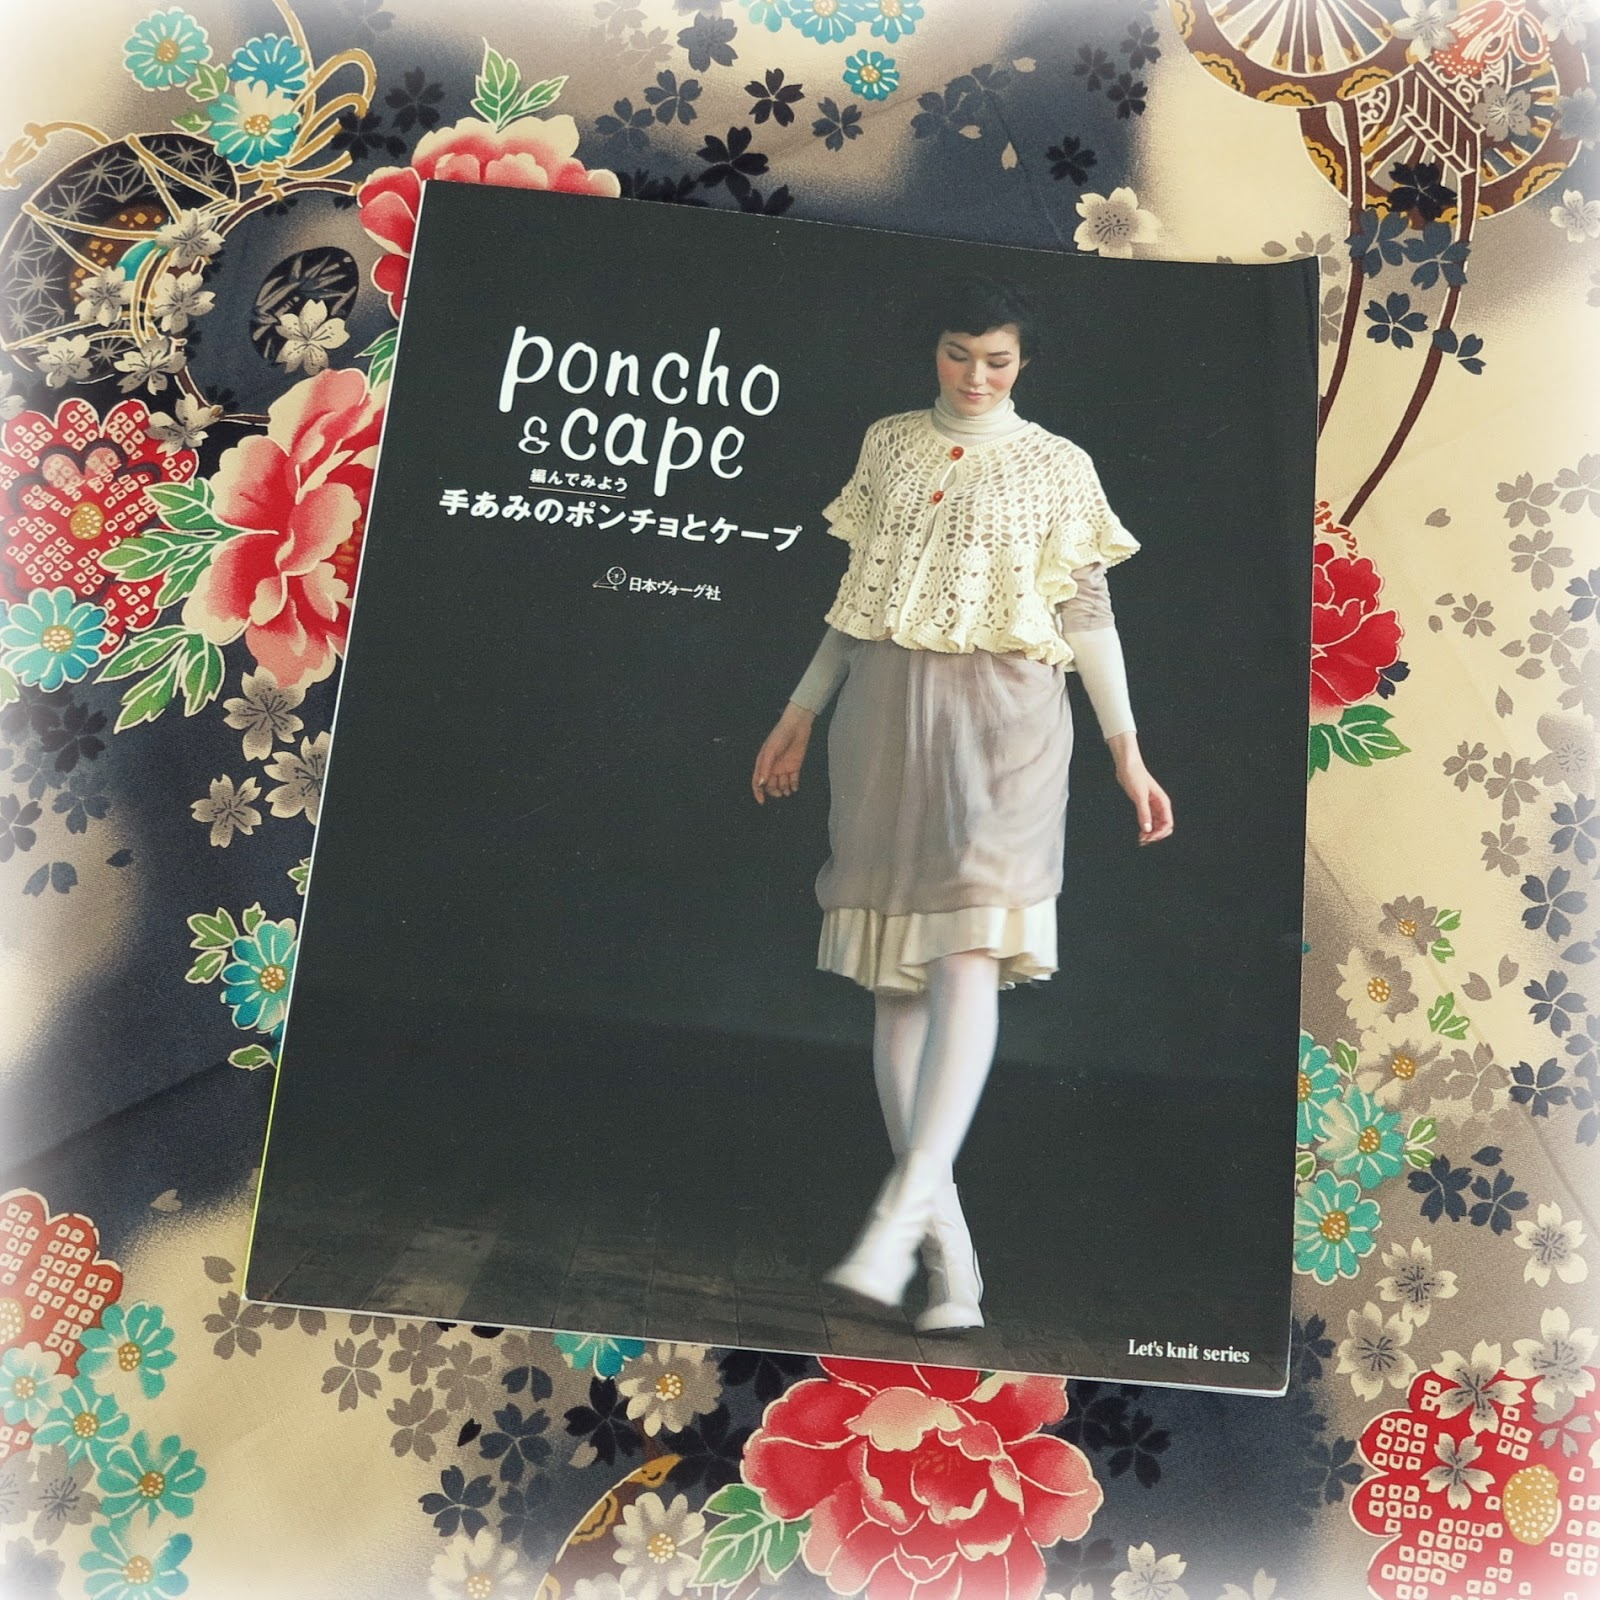 ByHaafner, japanese crochet book, poncho & cape